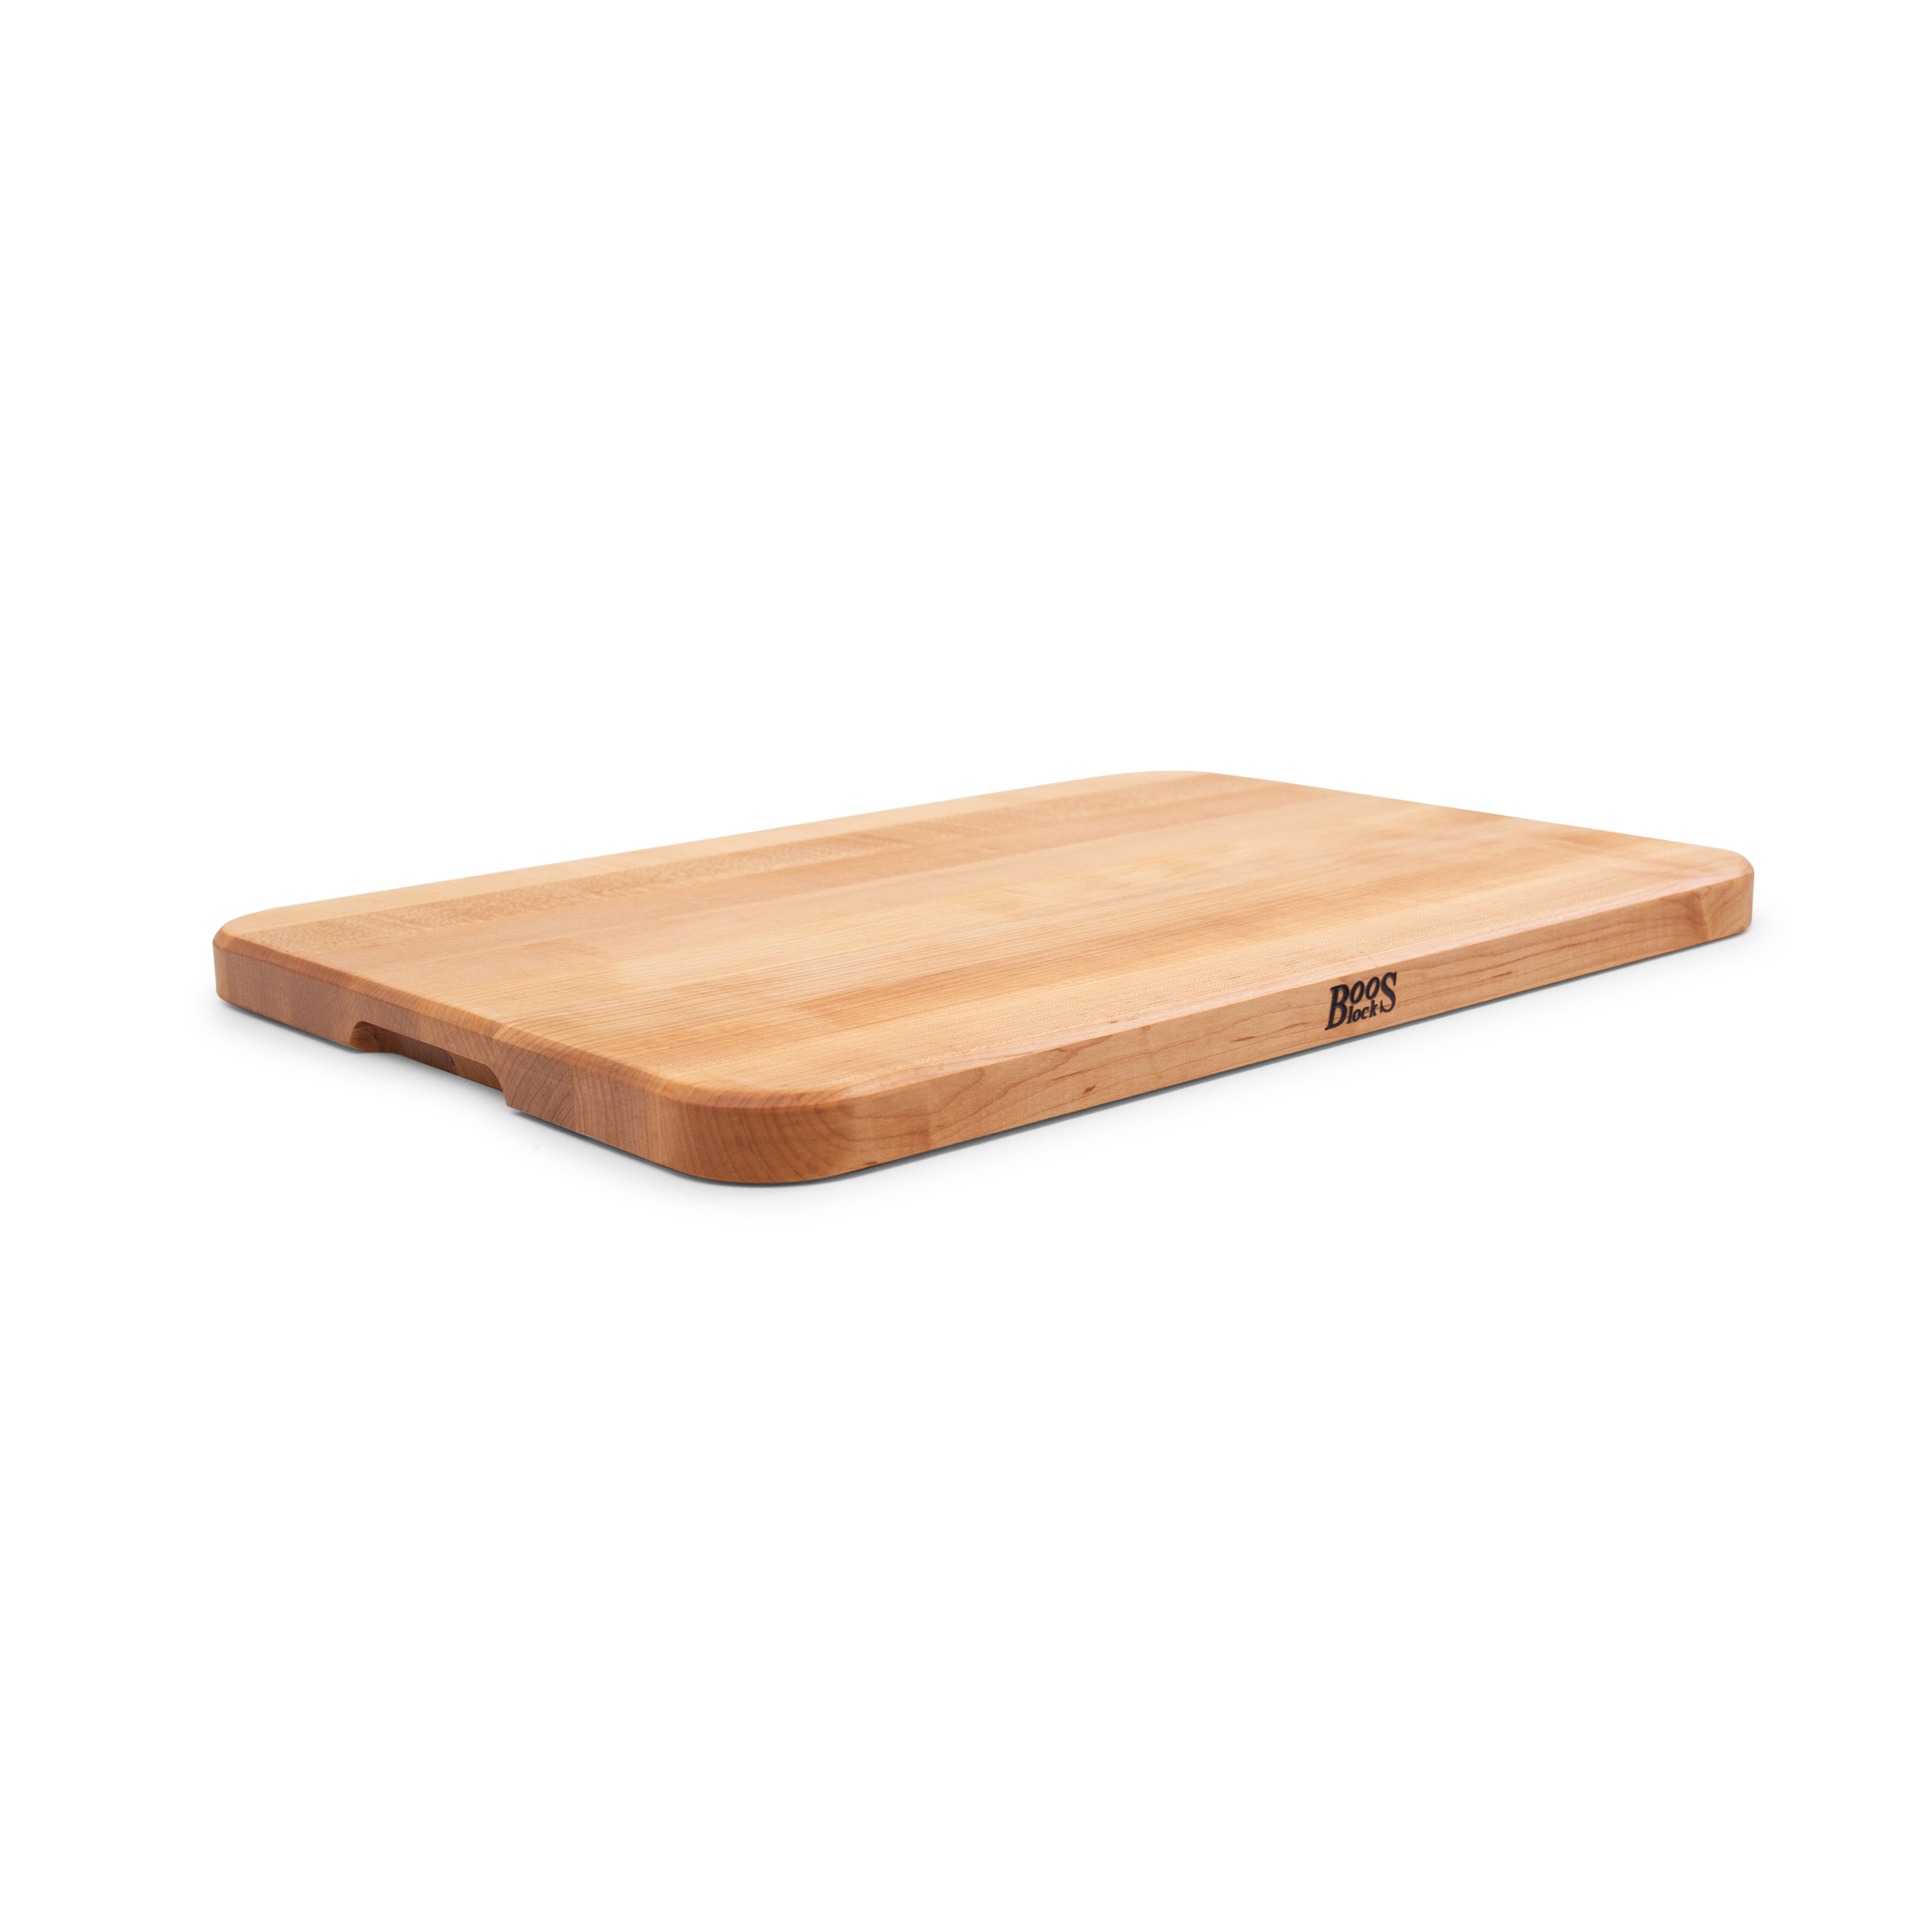 John Boos CB4C-M171201 cutting board, wood